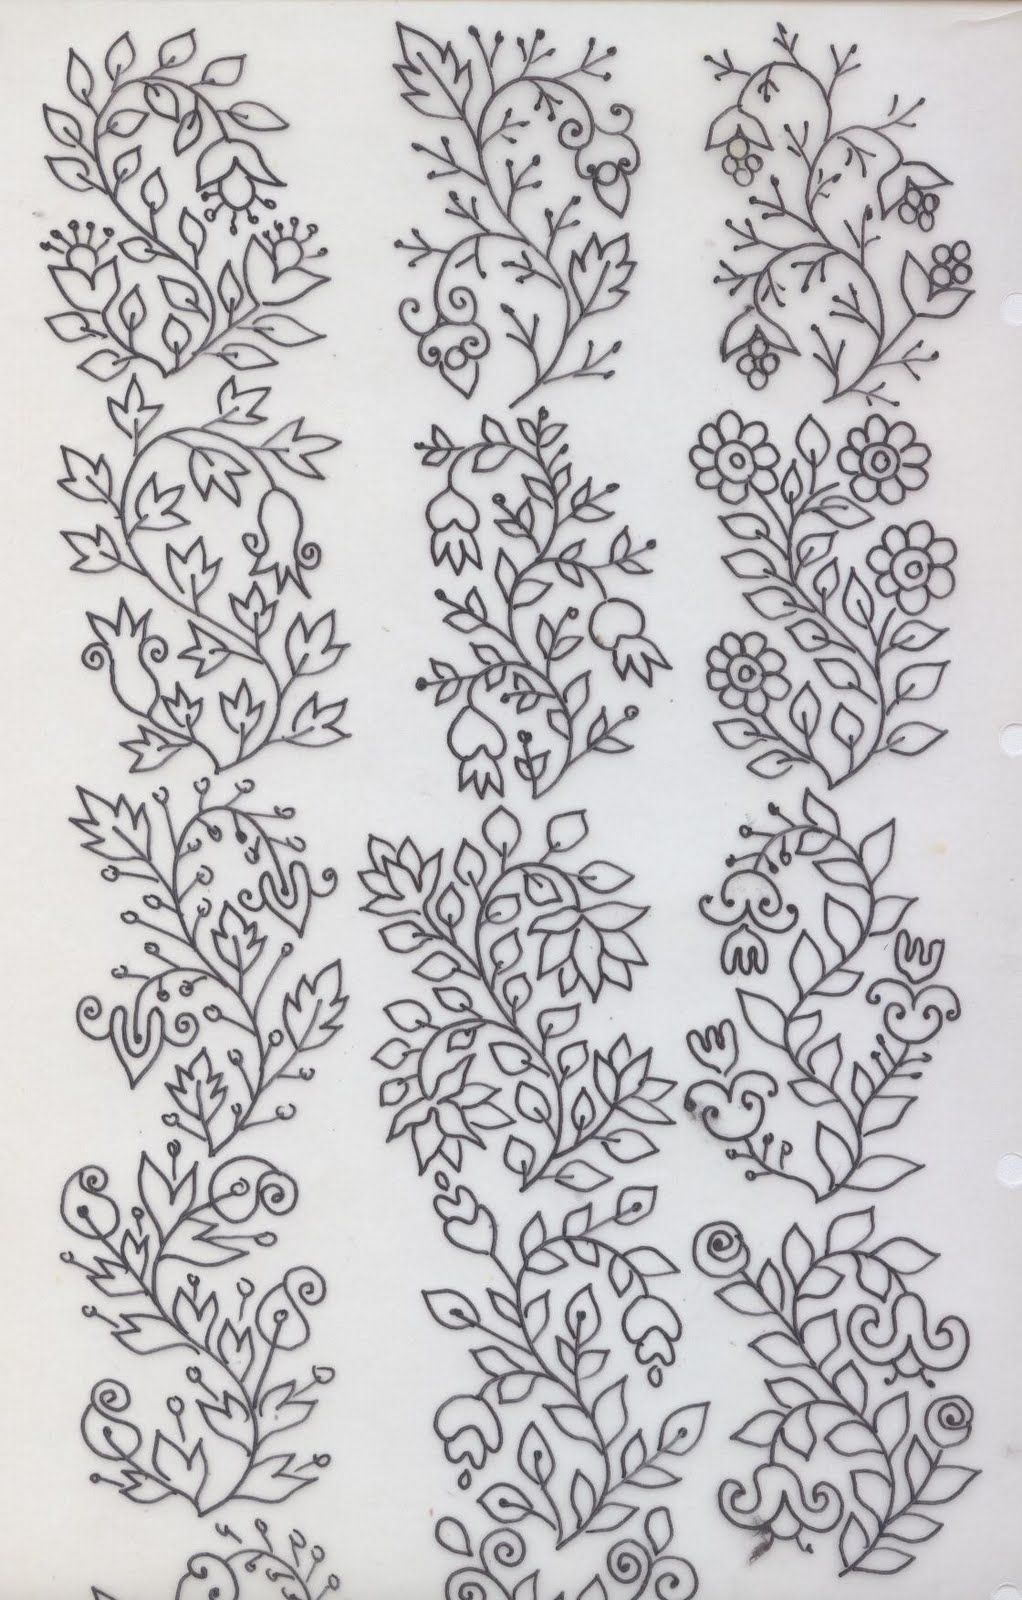 Embroidery designing embroidery pinterest embroidery designs